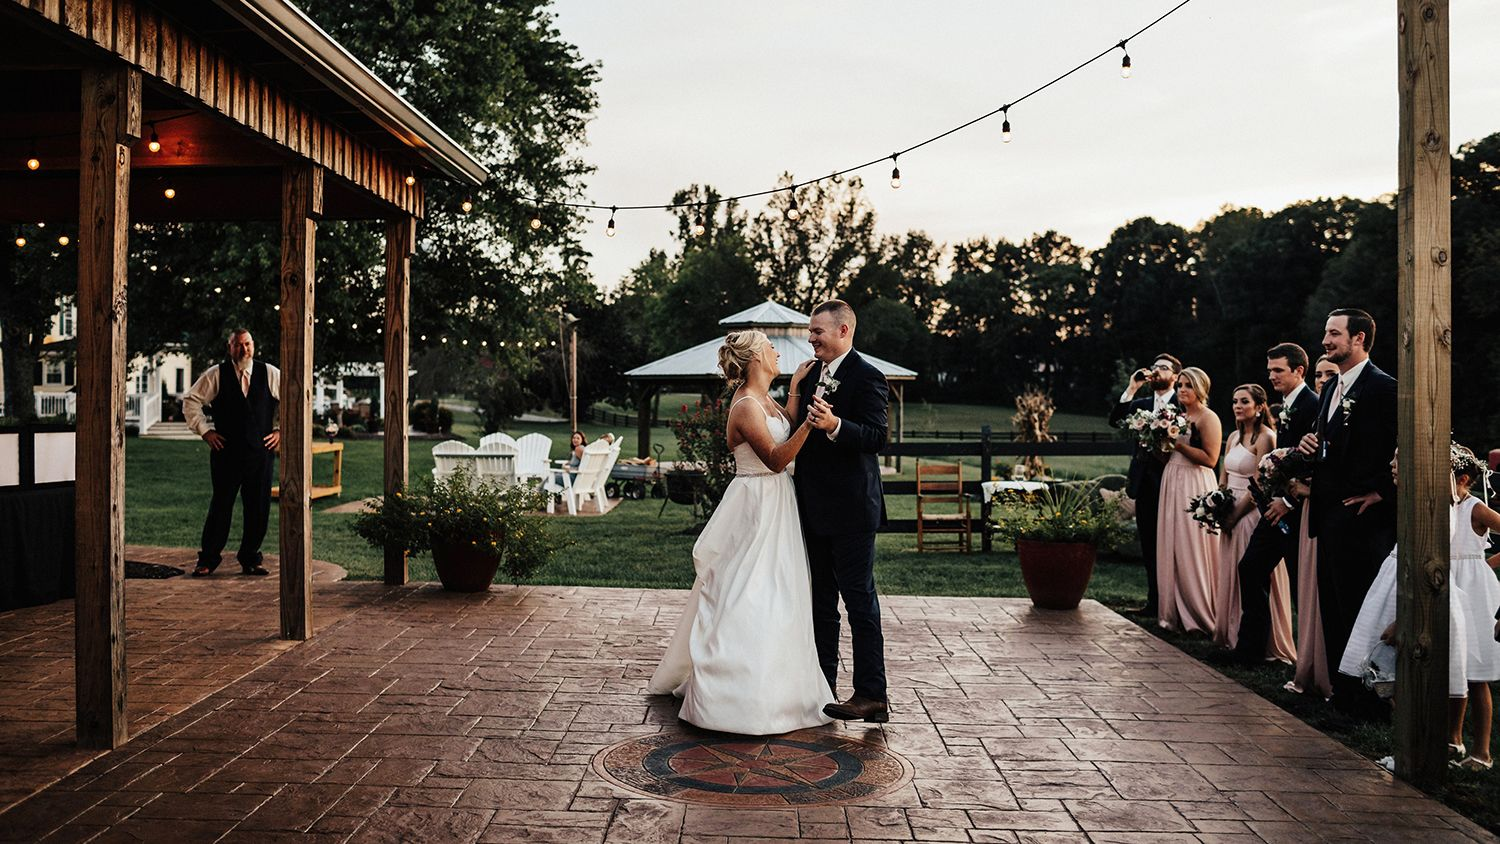 Bride And Groom Dancing on Patio of  Reception Barn